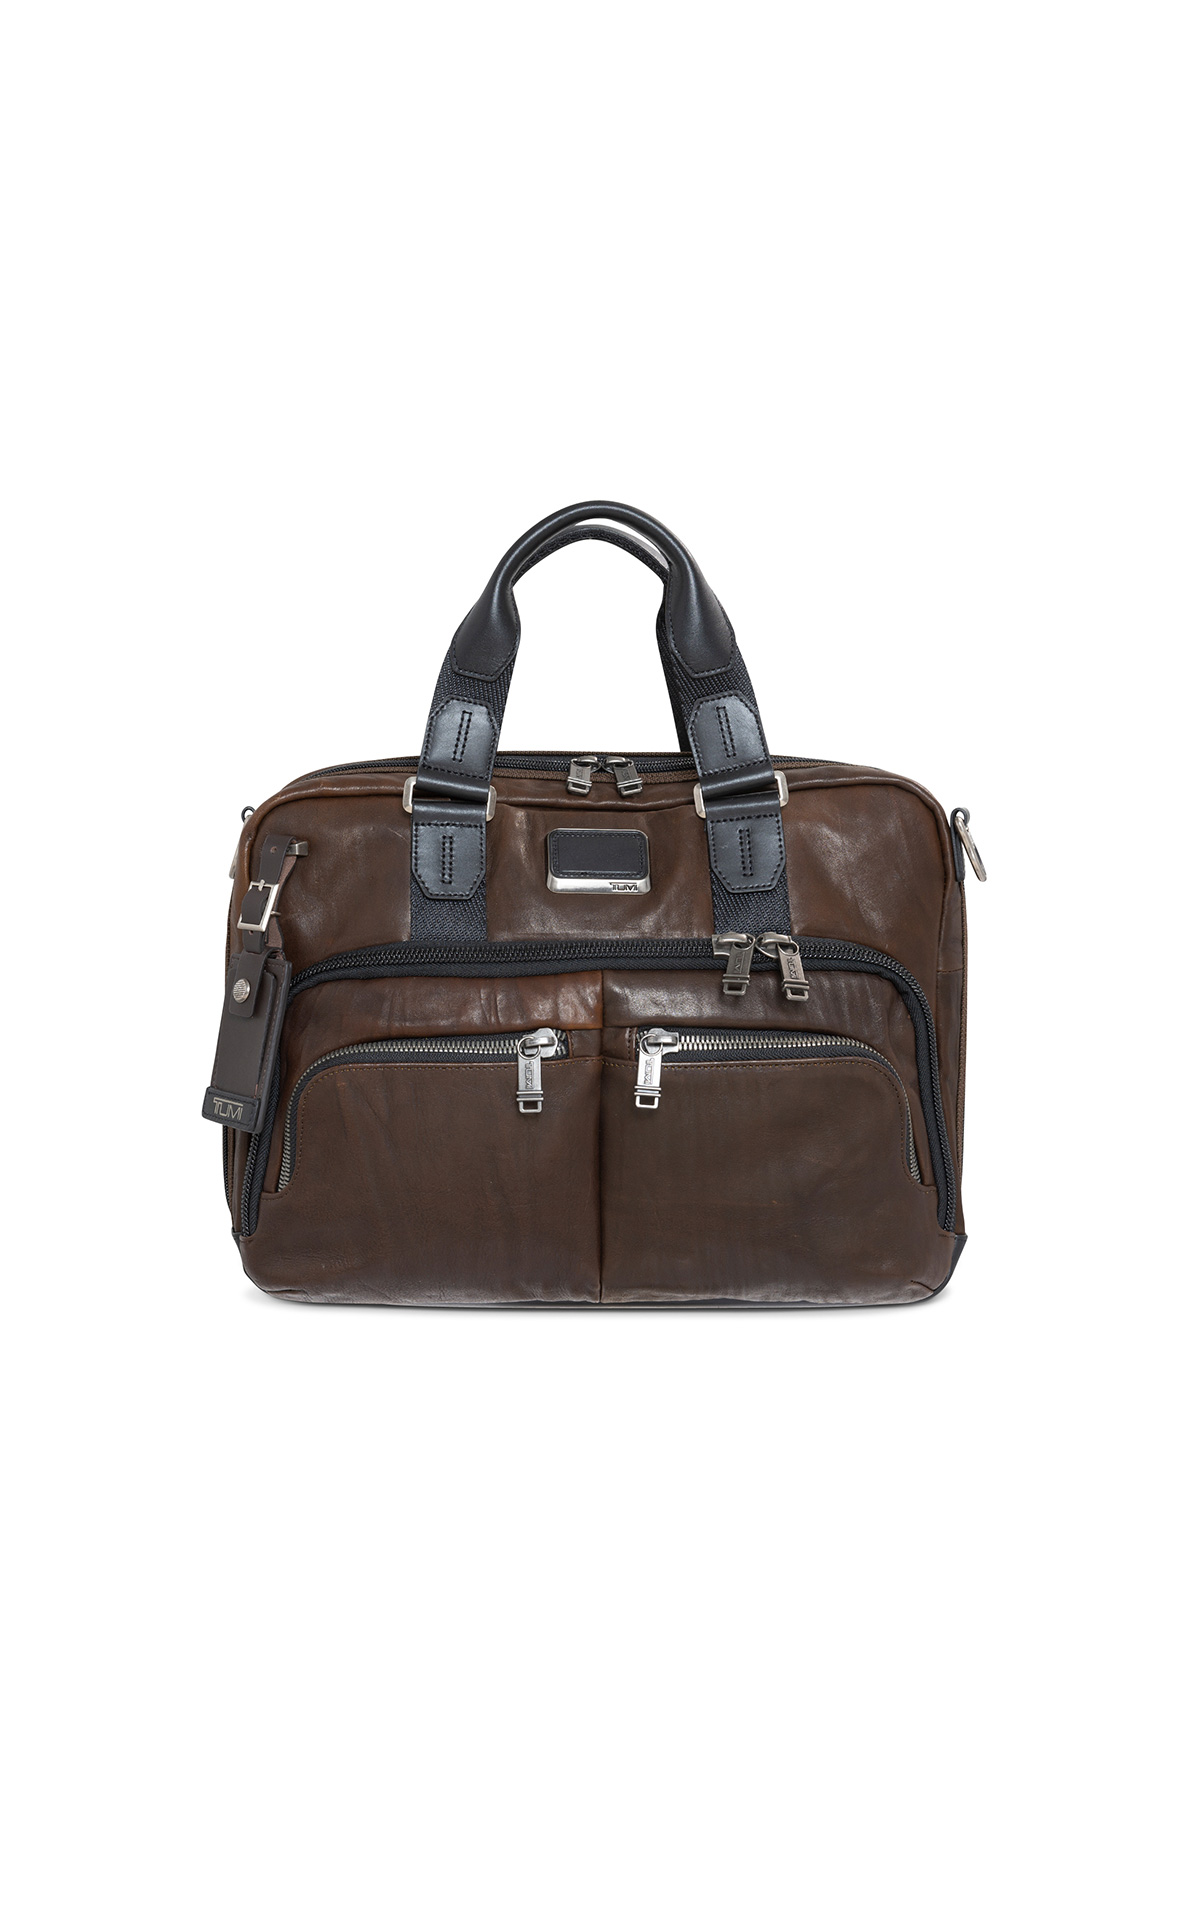 Tumi brown briefcase